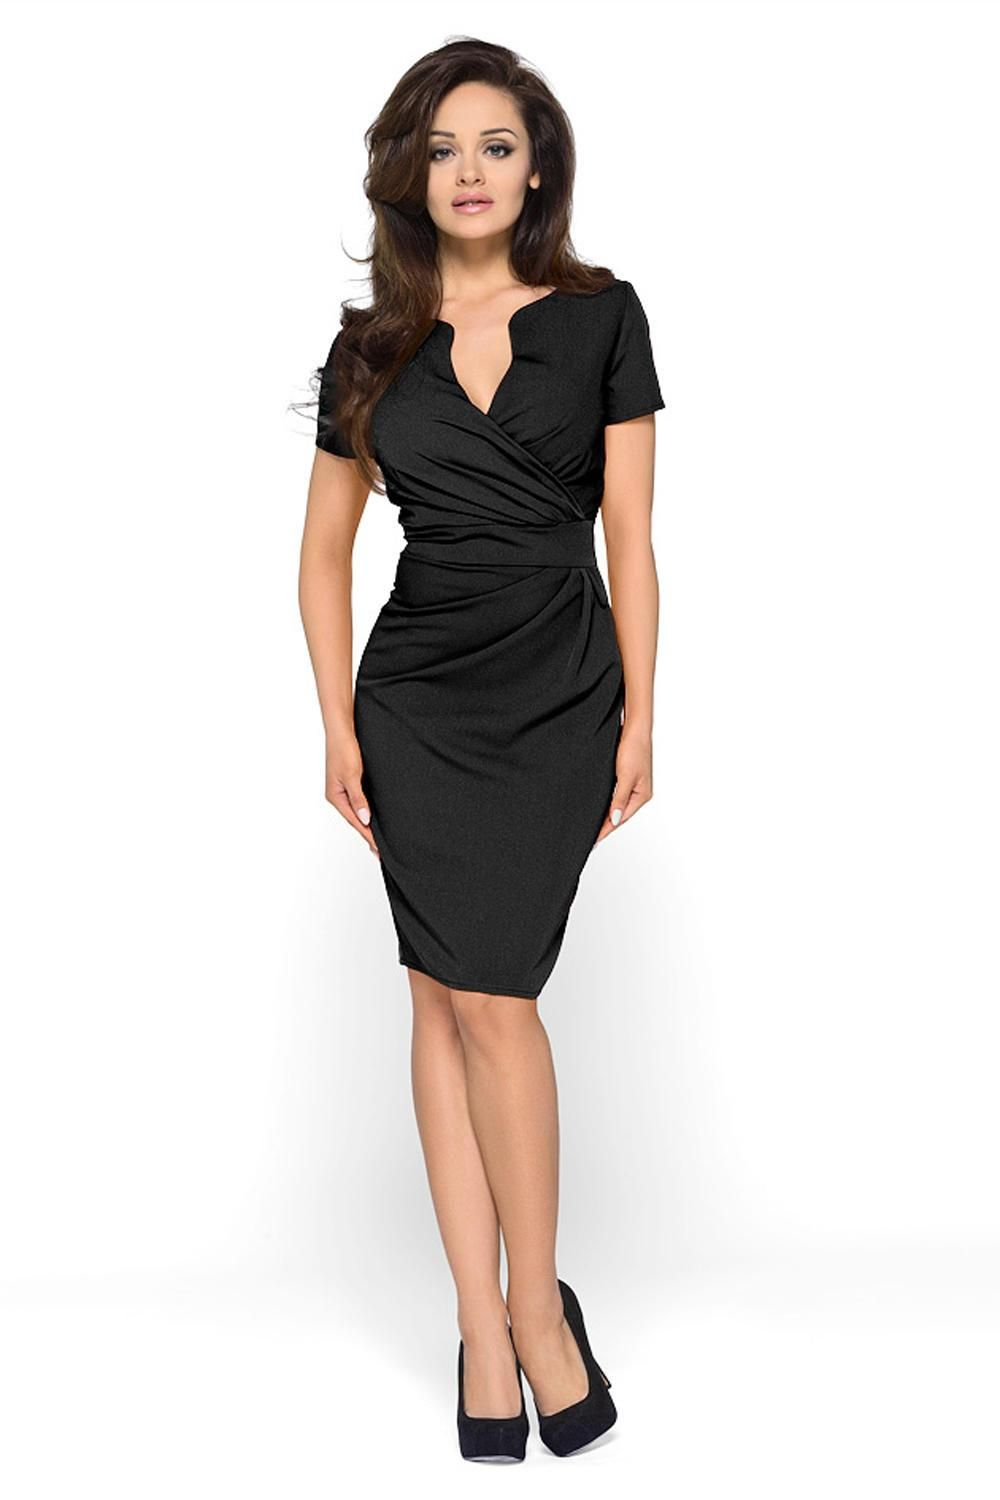 6043cf0a2a15 Wrap Around Self Belted Sheath Black Dress | Products | Dresses ...